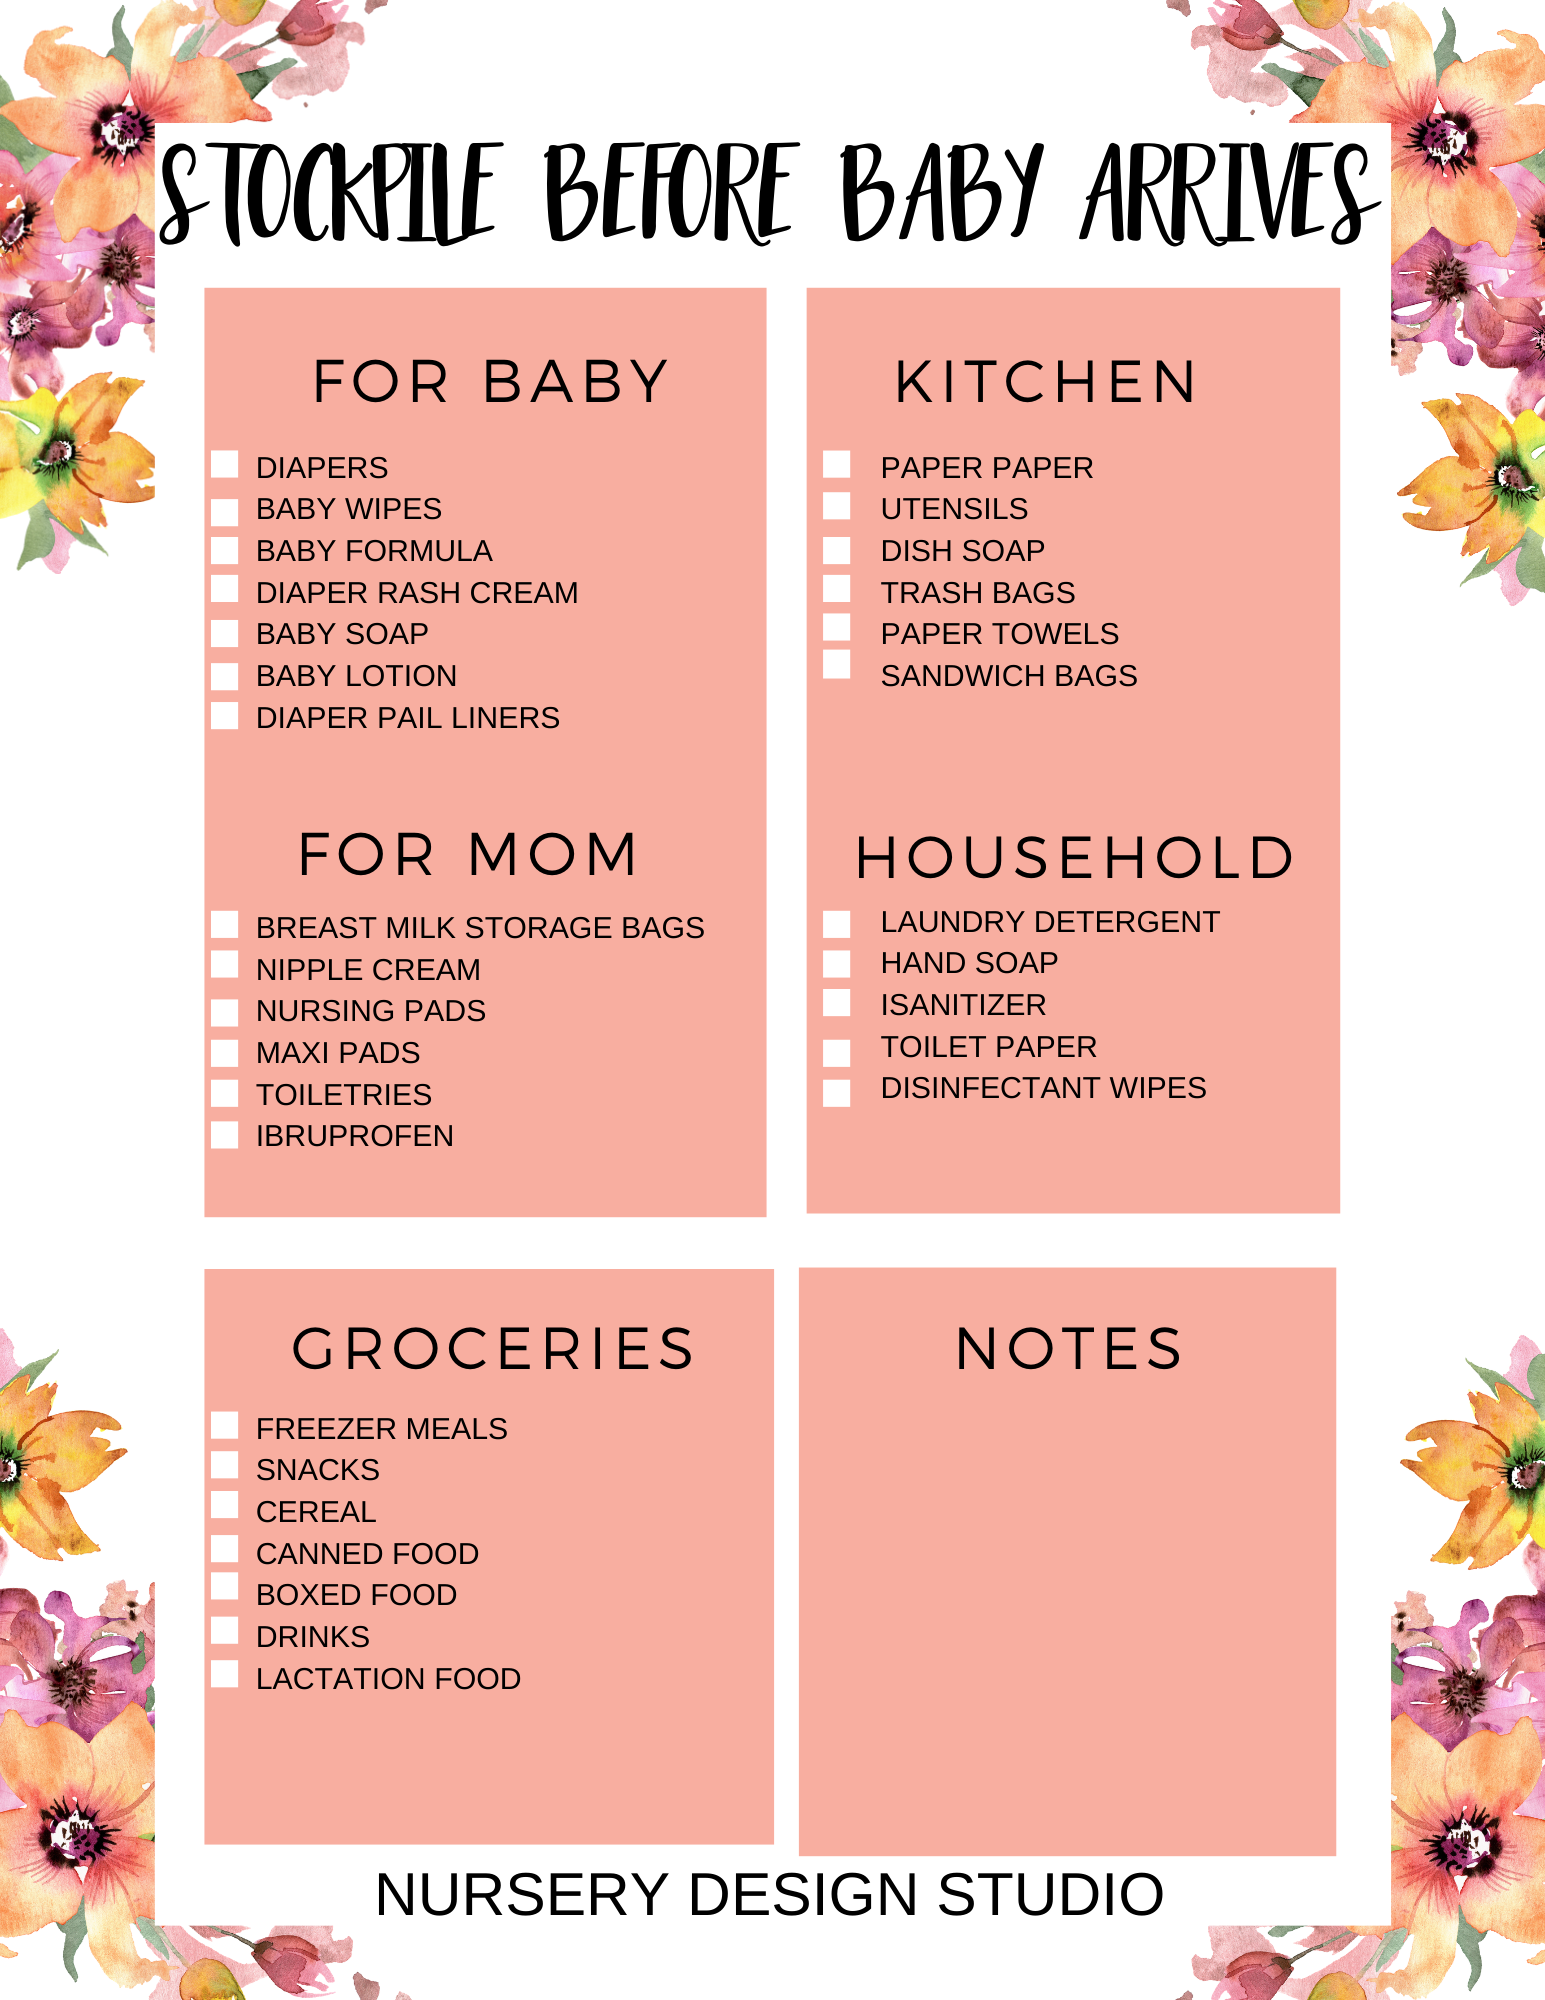 THINGS TO STOCKPILE BEFORE BABY ARRIVES